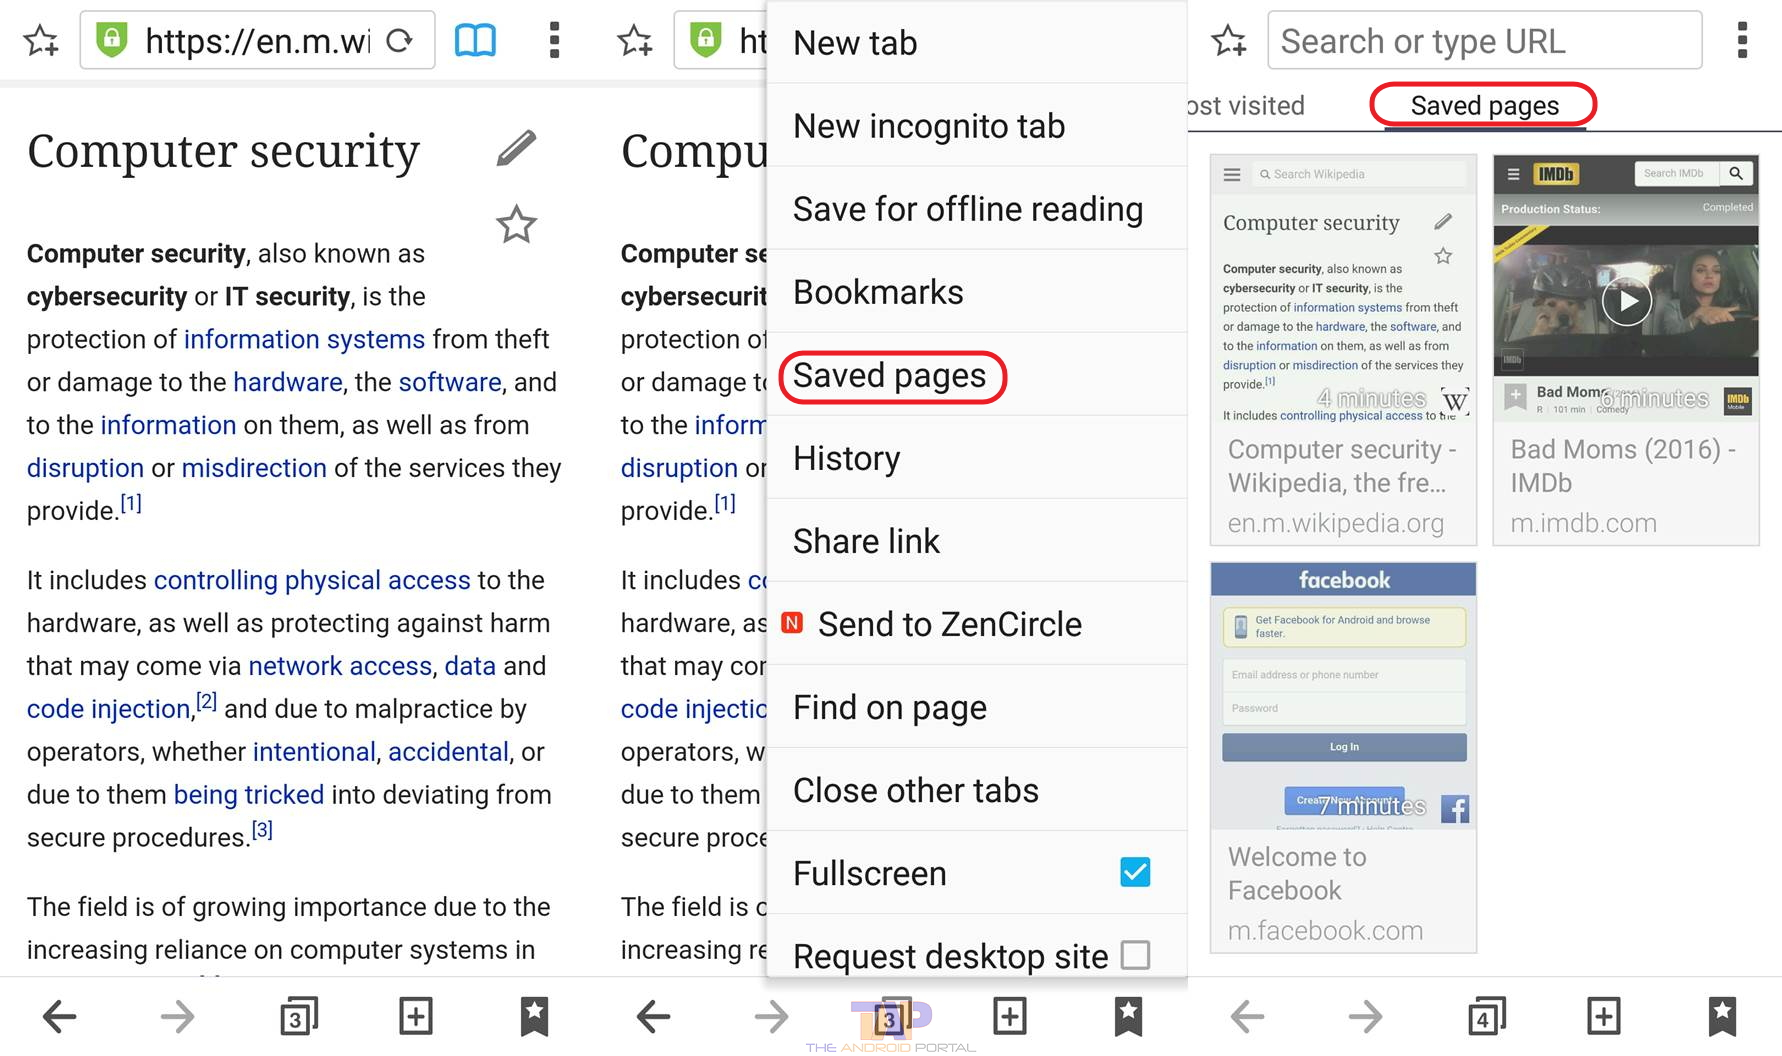 How to Access to Saved Pages on Android Device